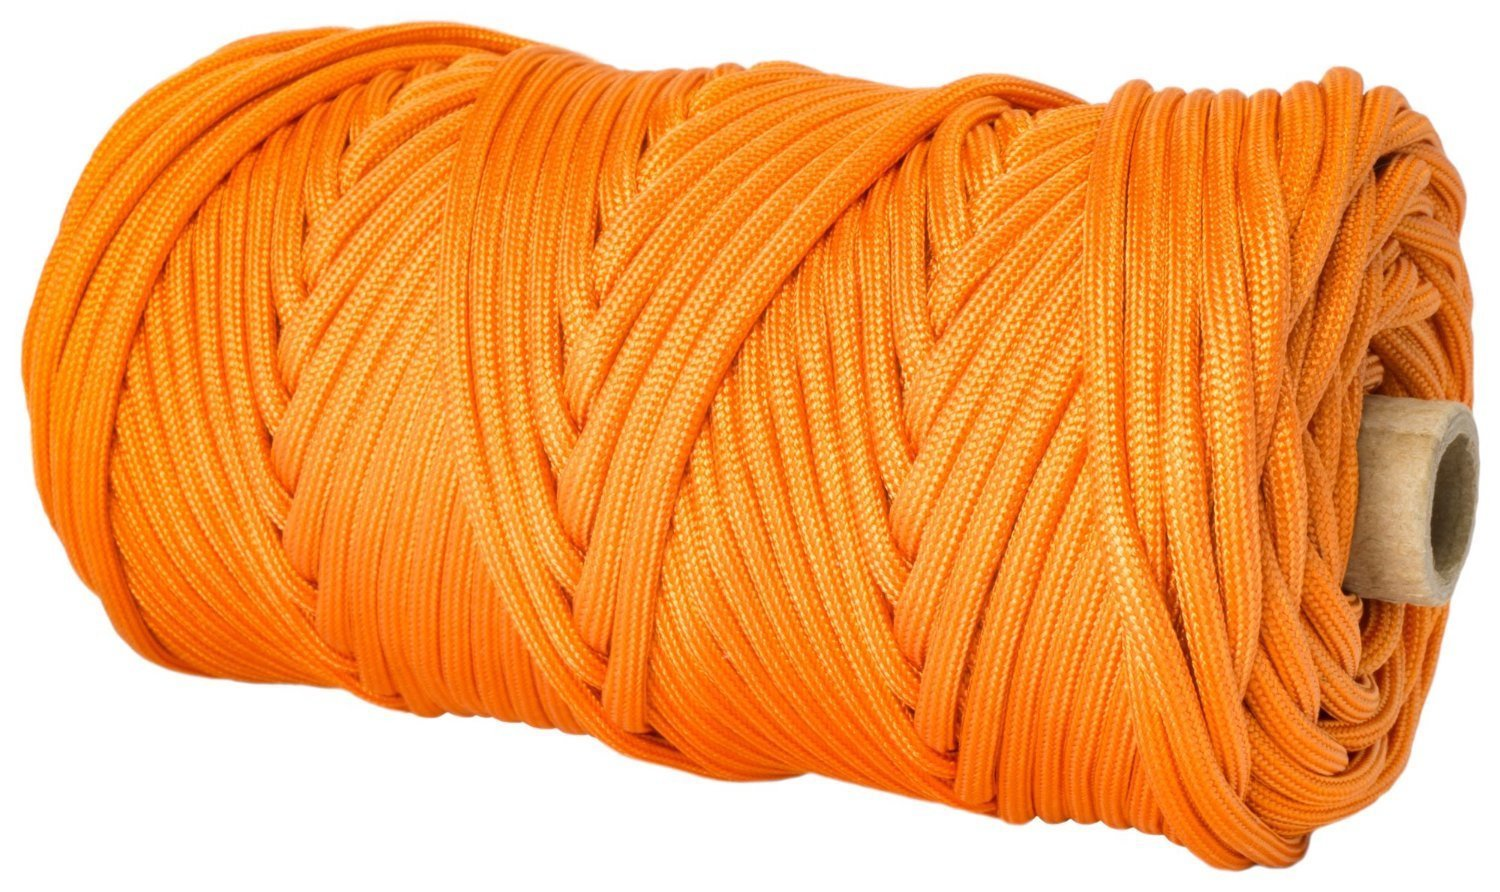 X-CORDS Paracord 850 Lb Stronger Than 550 and 750 Made by Us Government Certified Contractor (300' Orange Tube) by X-CORDS